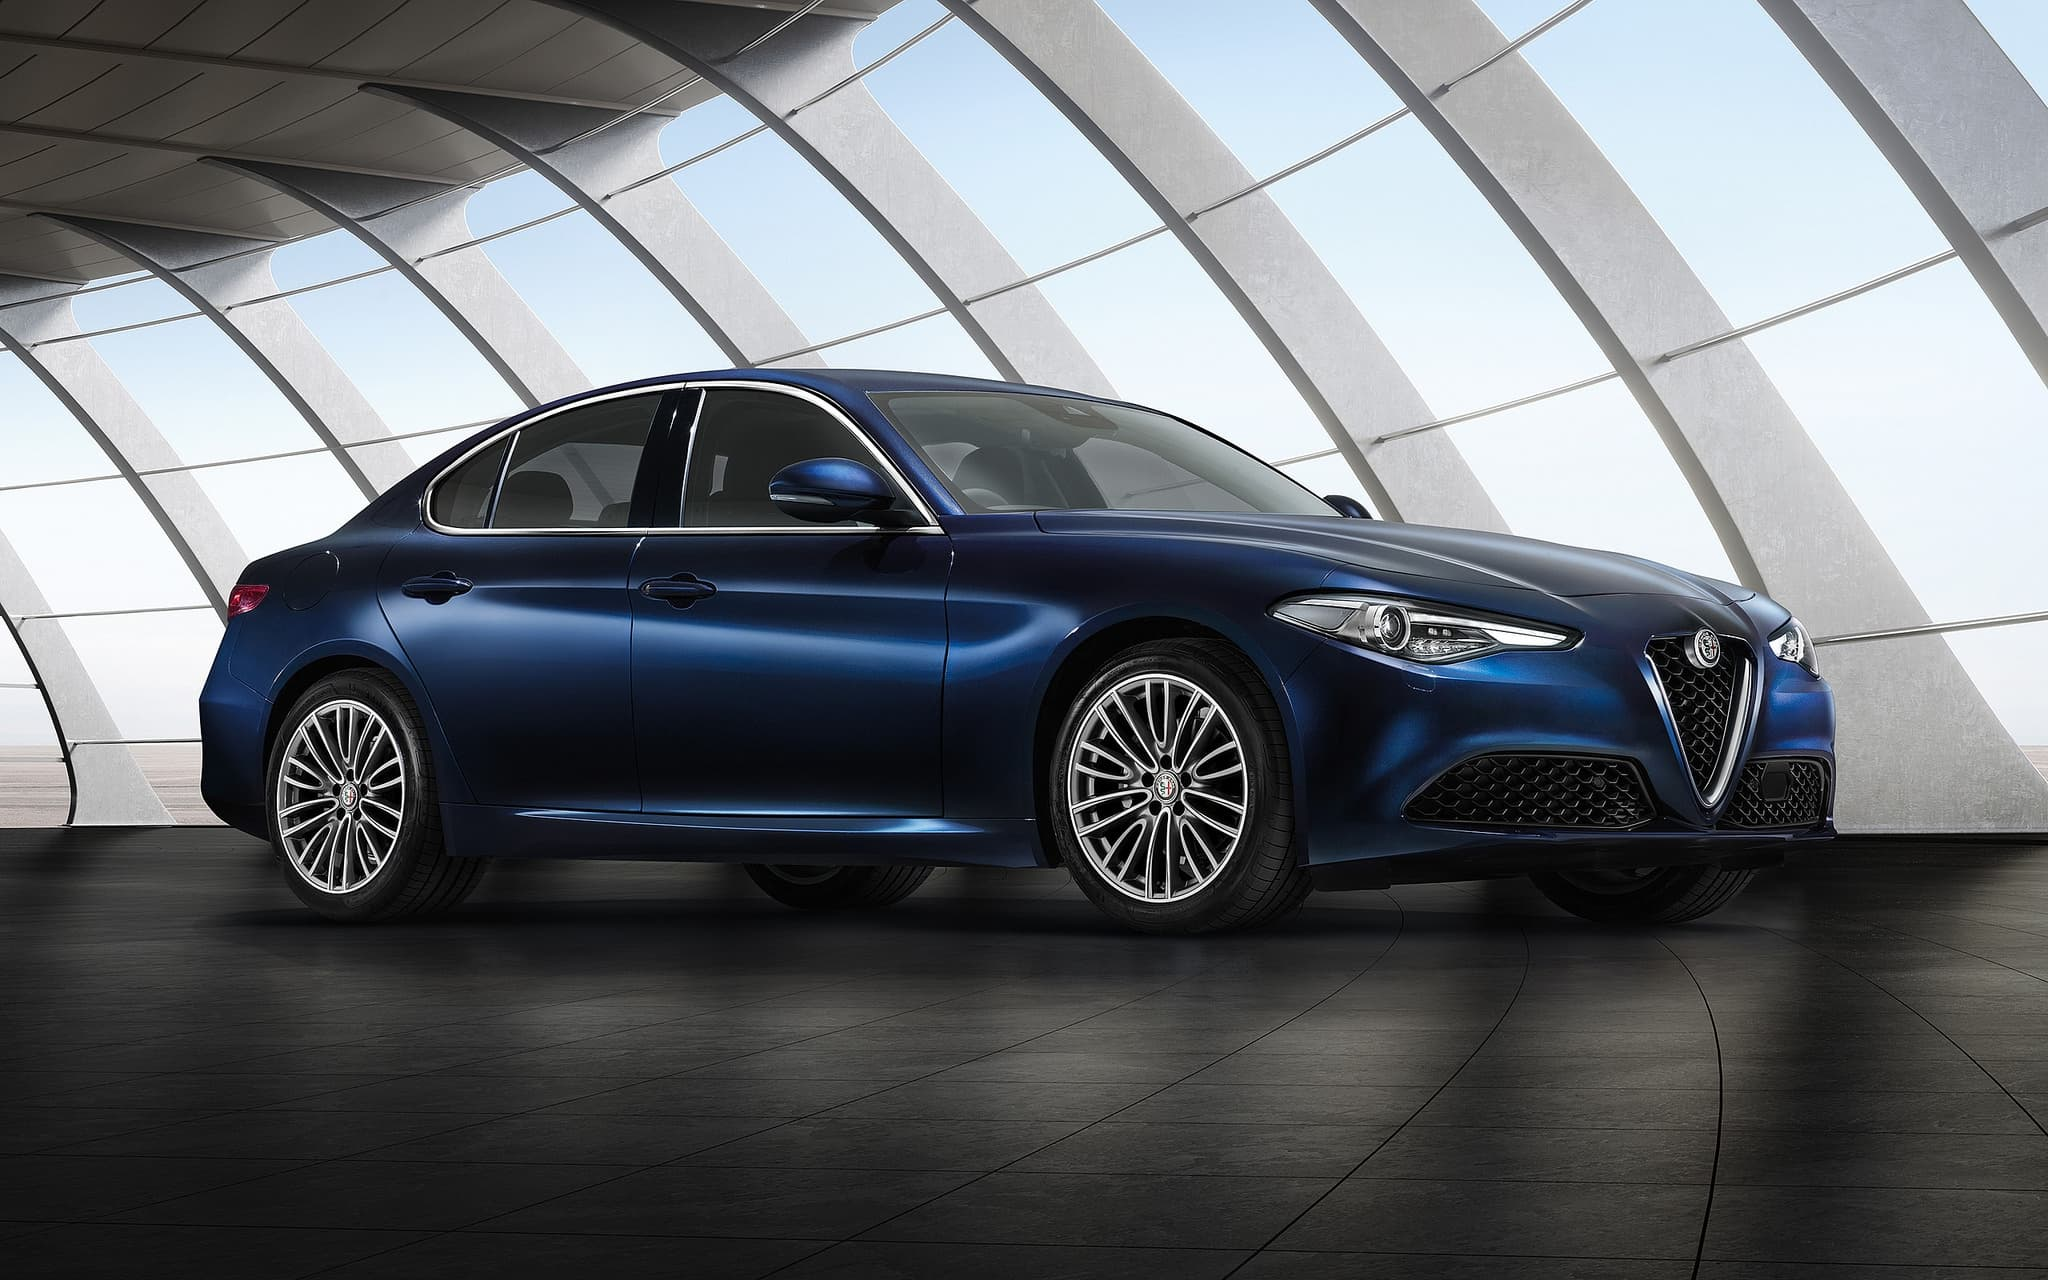 2016 Alfa Romeo Giulia wallpaper